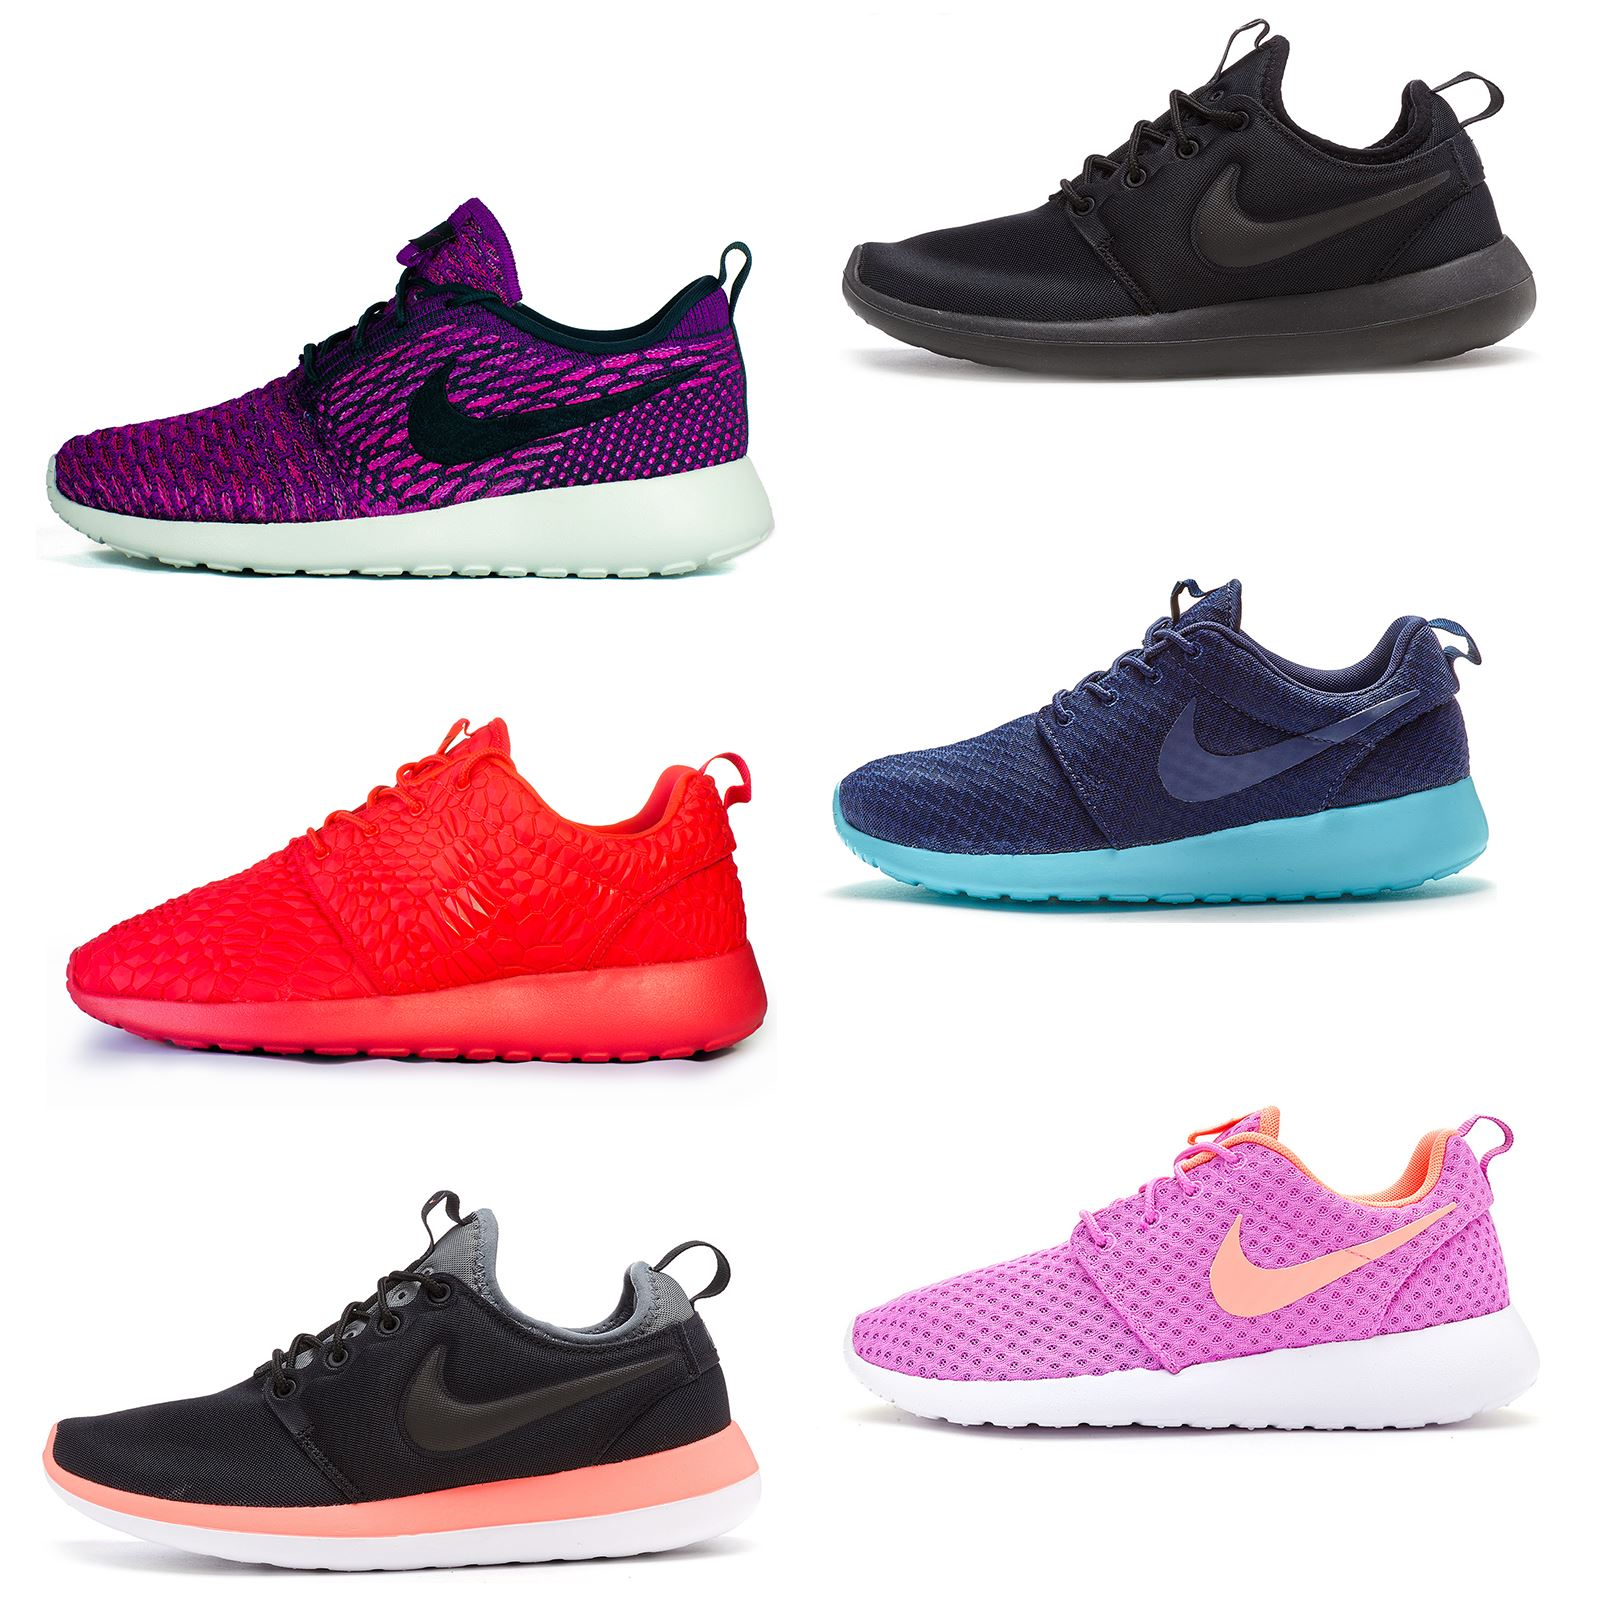 185f1876c52f Details about Nike Roshe Run One Print   Mesh Women Trainers in All Sizes